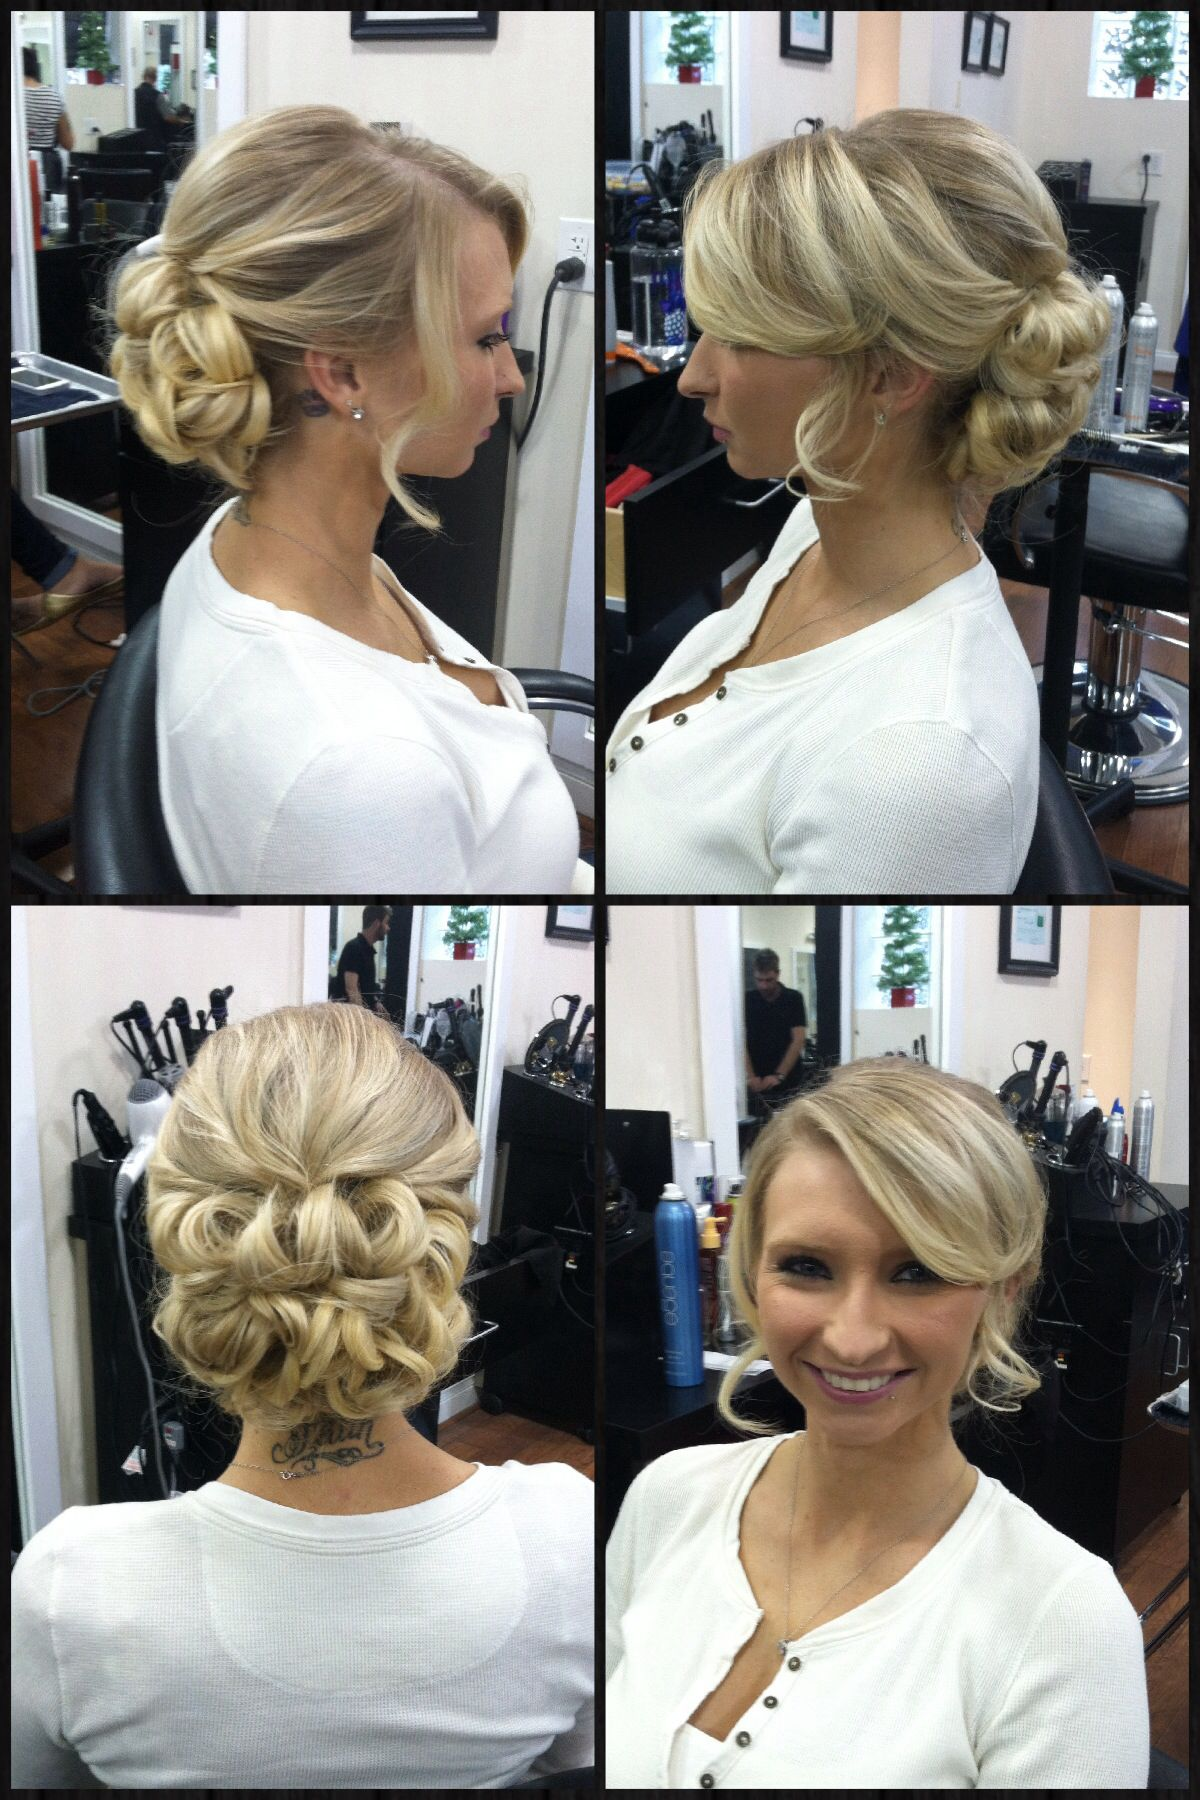 Pin By Meghan Bryan Lucas On Hair Competition Hair Ball Hairstyles Military Ball Hair